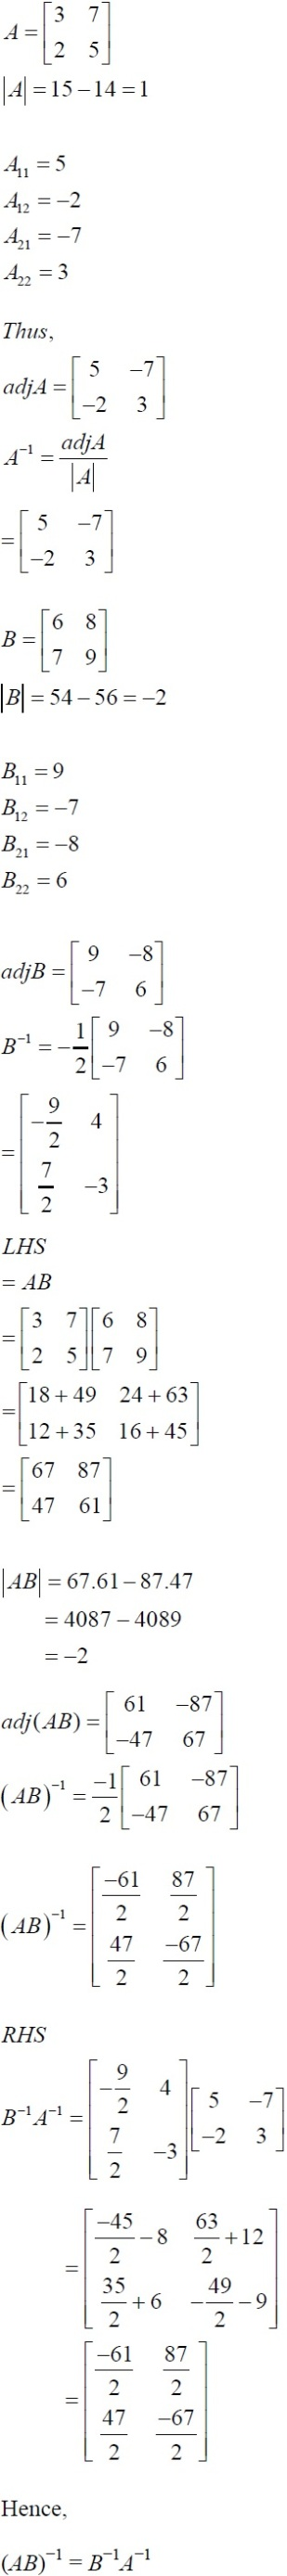 NCERT Solutions for CBSE Class 12 Mathematics ‒ Chapter 4: Determinant (Solution 12)